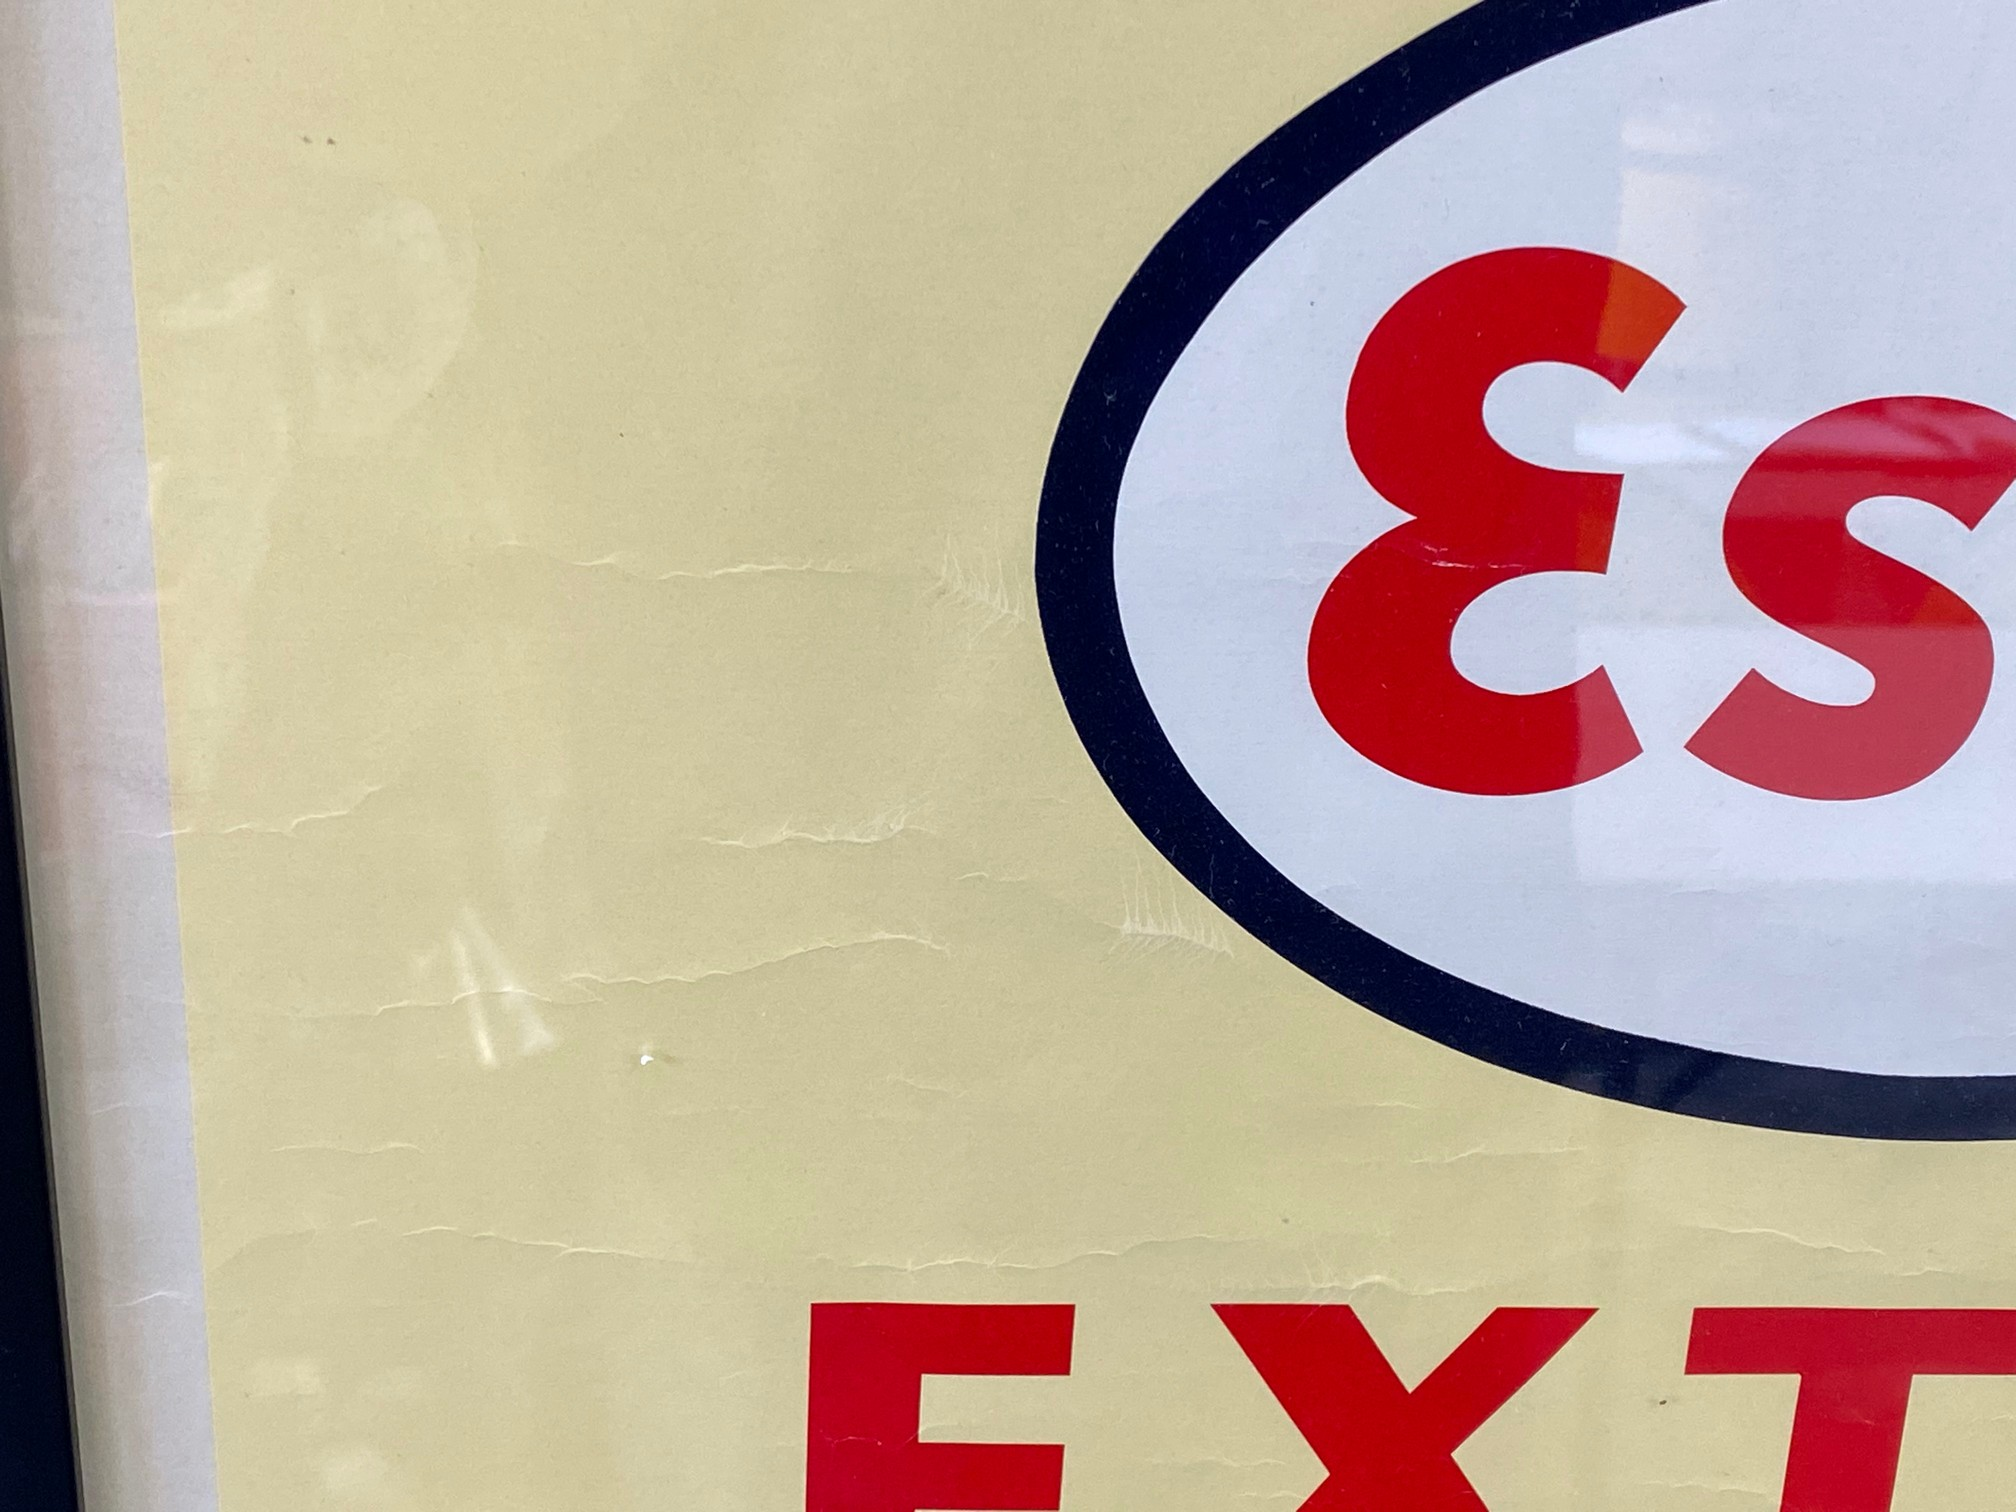 """An original Esso Extra Motor Oil advertisement, framed and glazed, 21 1/2 x 31 1/2"""". - Image 2 of 3"""